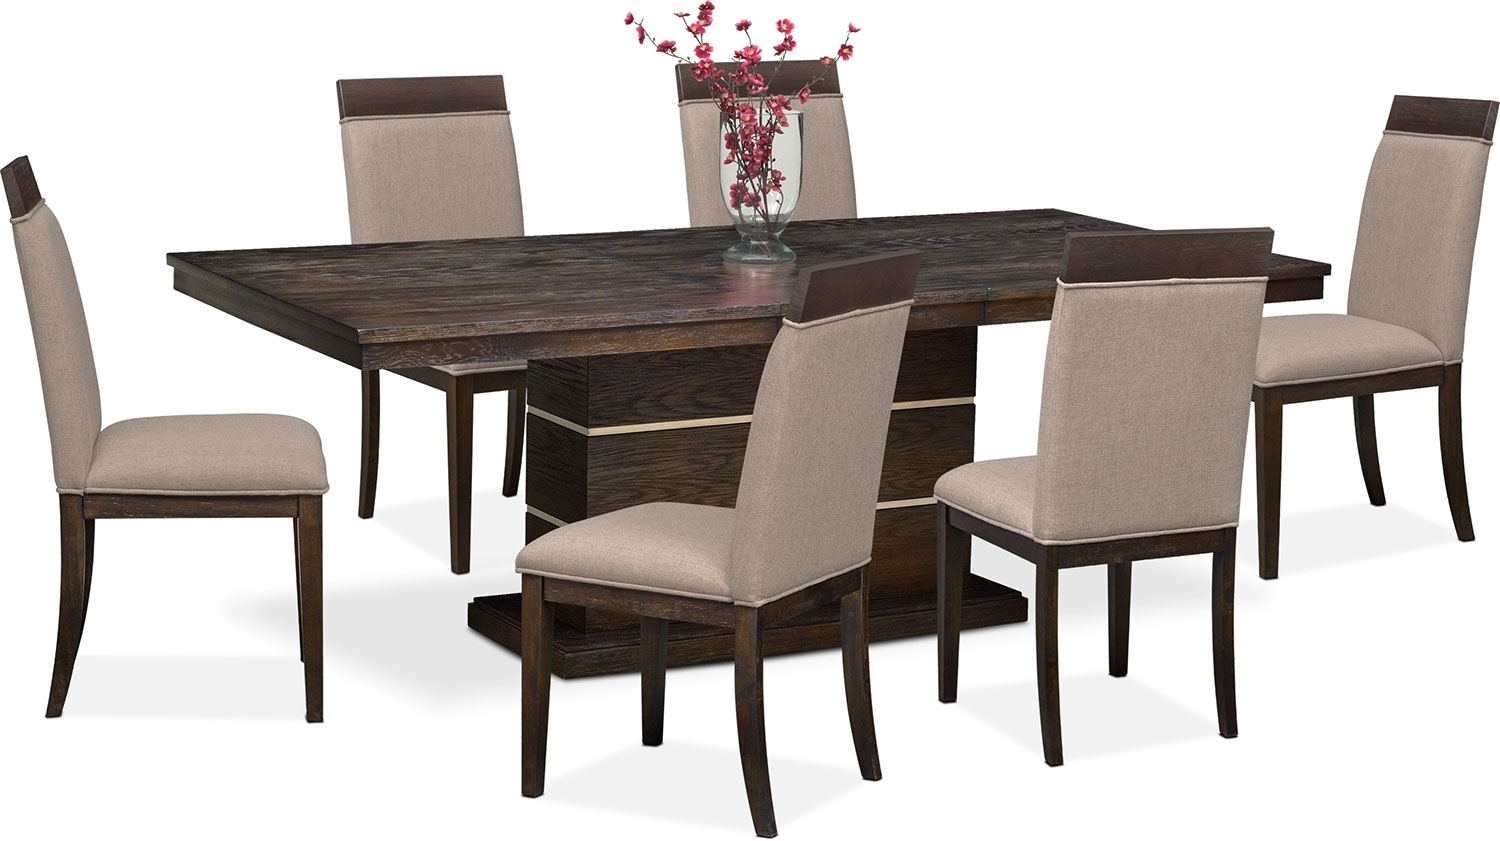 Gavin Pedestal Table And 6 Side Chairs – Brownstone | American Intended For Most Recently Released Gavin Dining Tables (Photo 2 of 20)